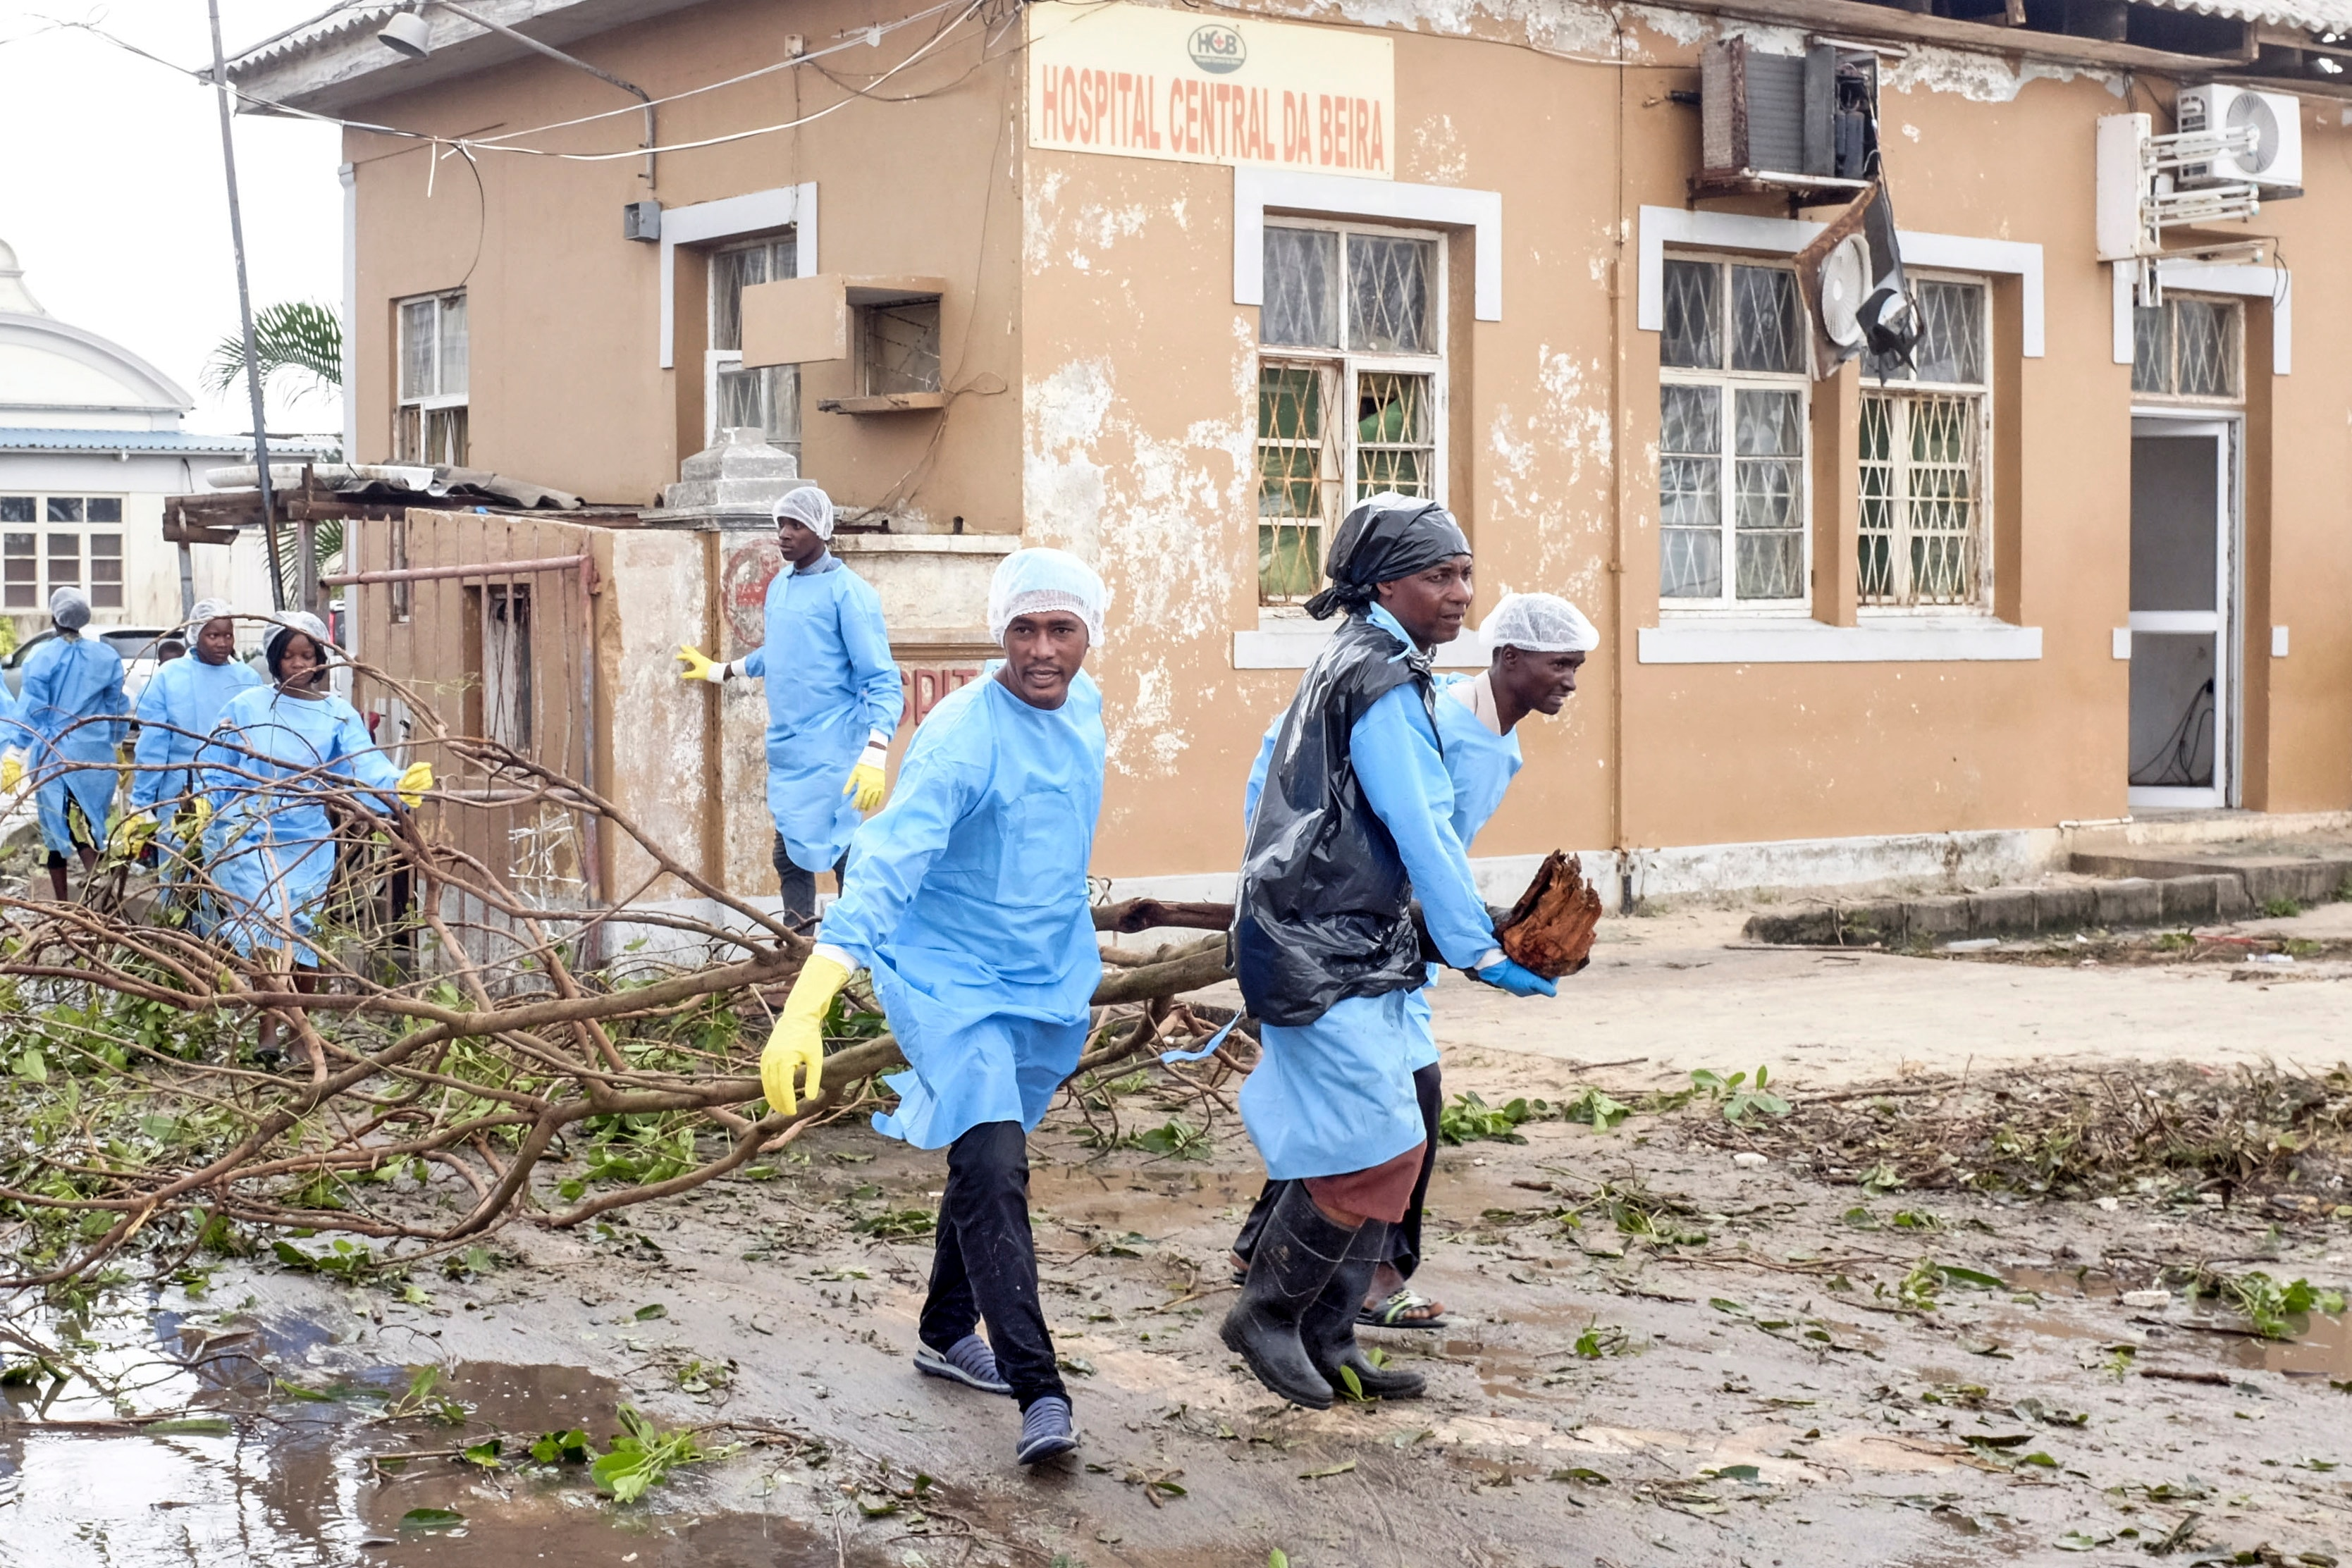 Nurses of Beira Central Hospital help to clean the streets of debris after the passage of the cyclone Idai in Beira City.